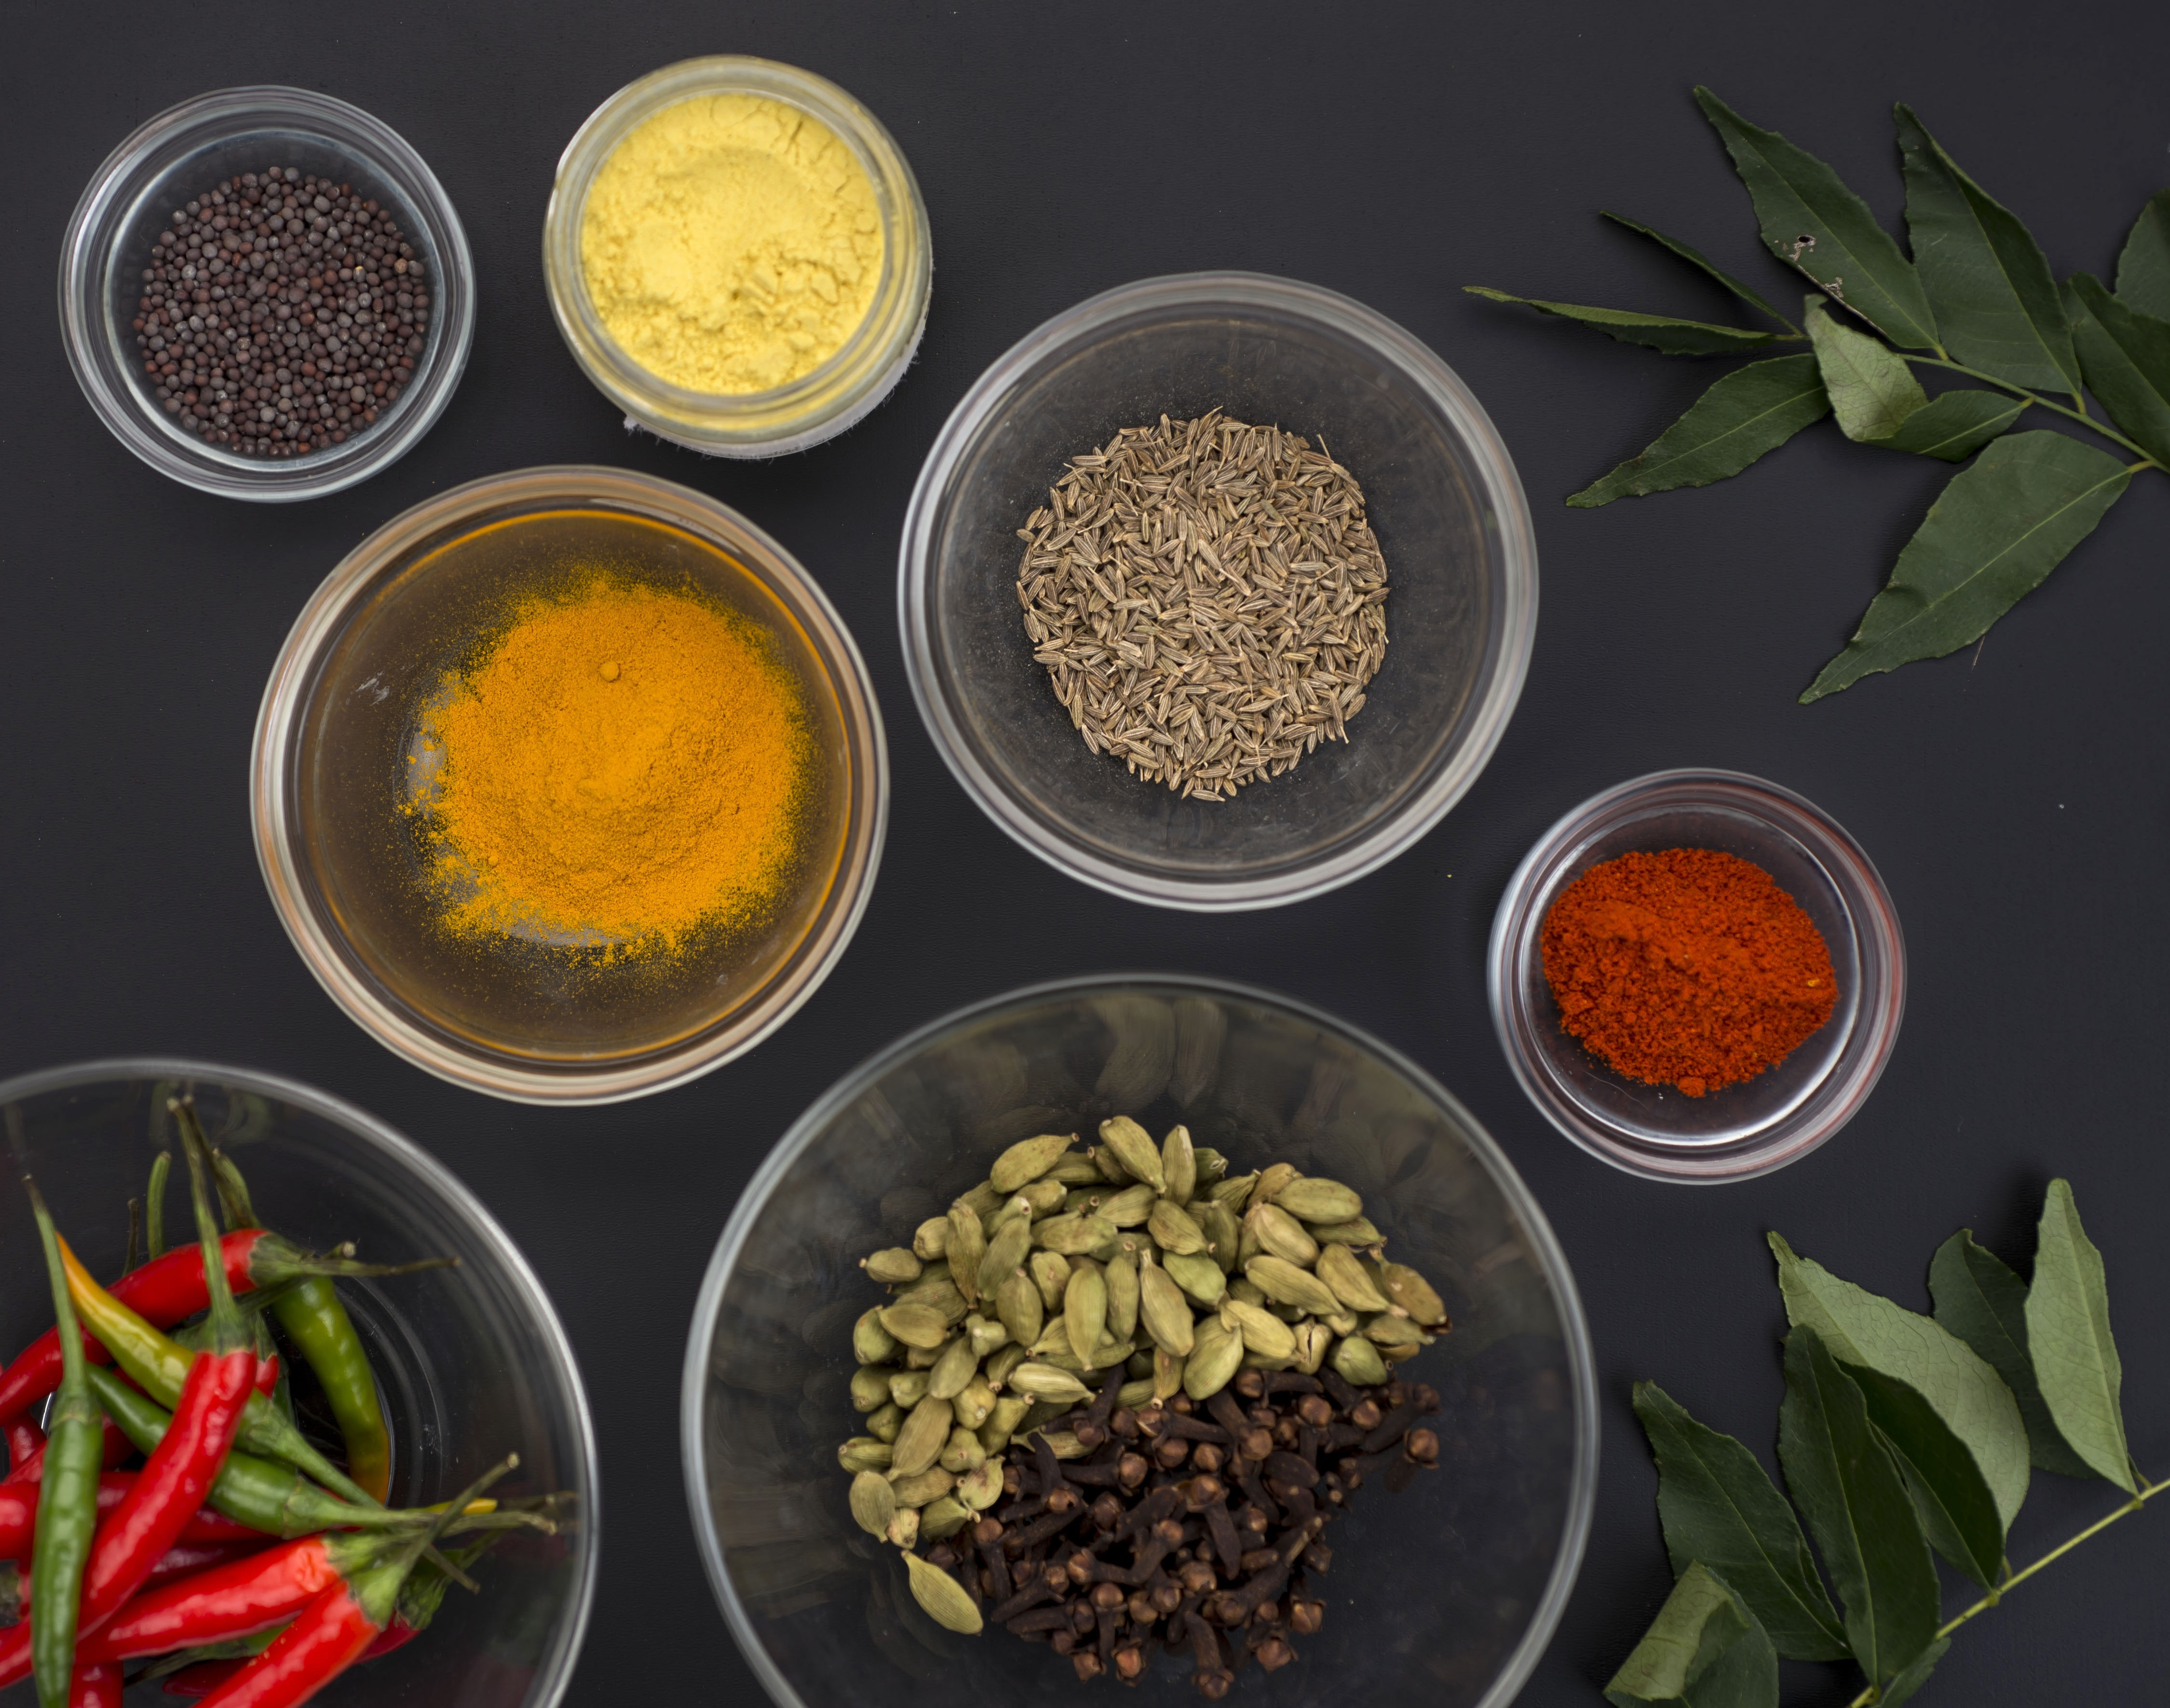 An assortment of spices, including chili peppers, cardamom, cloves, red chilli powder, turmeric, asafetida, cumin seeds, black mustard seeds and curry leaves are vital for preparing dal, the versatile staple made from dried beans.